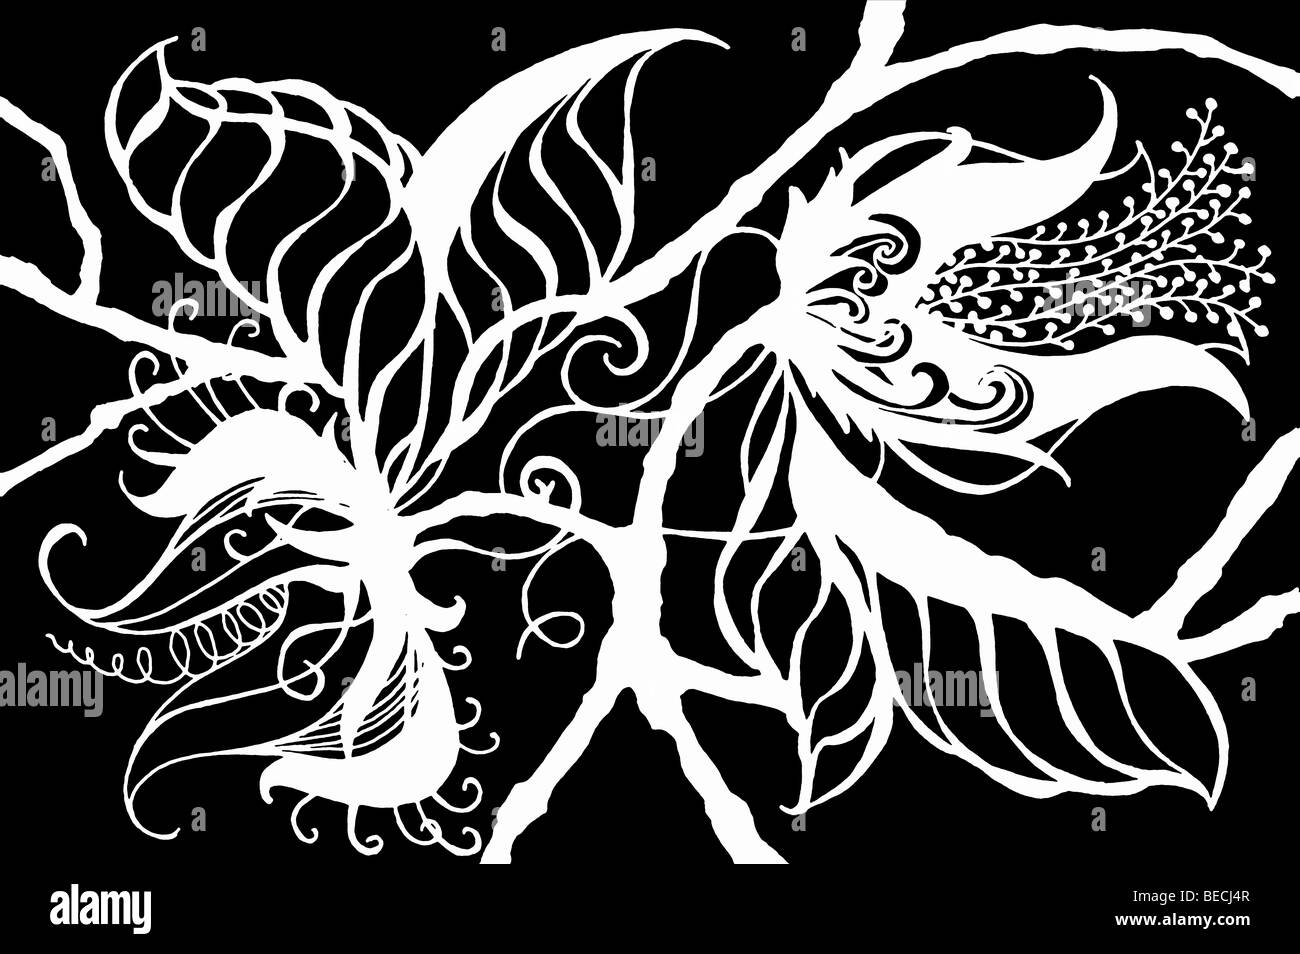 Repeatable white on black drawing of exotic and fanciful botanical blossoms, leaves and stems in a silhouetted design - Stock Image